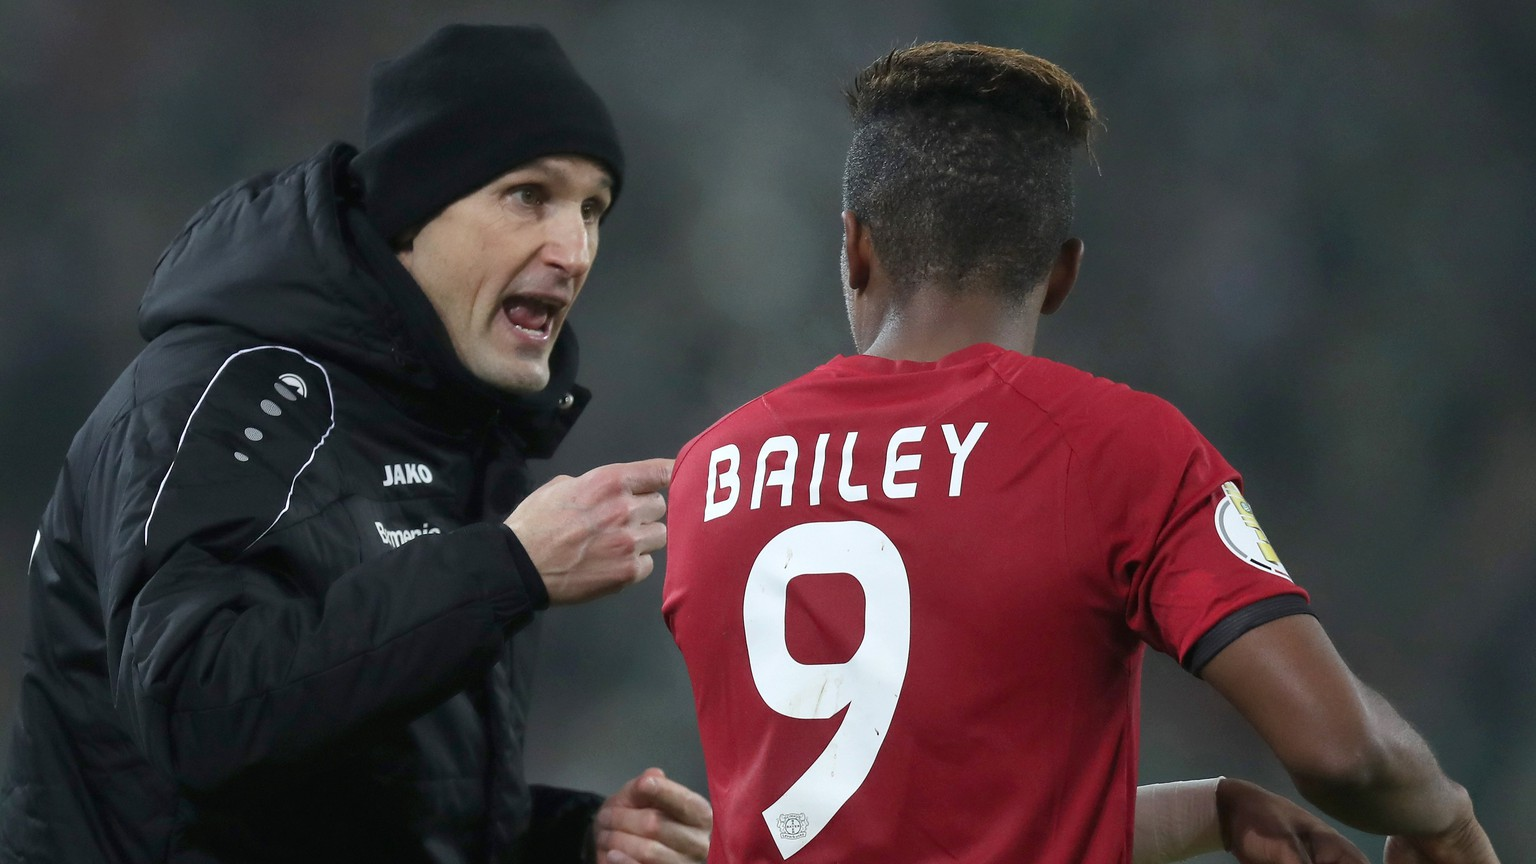 epa06400396 Leverkusen's head coach Heiko Herrlich gives advise to Leverkusen's Leon Bailey during the German DFB Cup round of 16 soccer match between Borussia Moenchengladbach and Bayer Leverkusen in Moenchengladbach, Germany, 20 December 2017.  EPA/FRIEDEMANN VOGEL (EMBARGO CONDITIONS - ATTENTION: The DFB prohibits the utilization and publication of sequential pictures on the